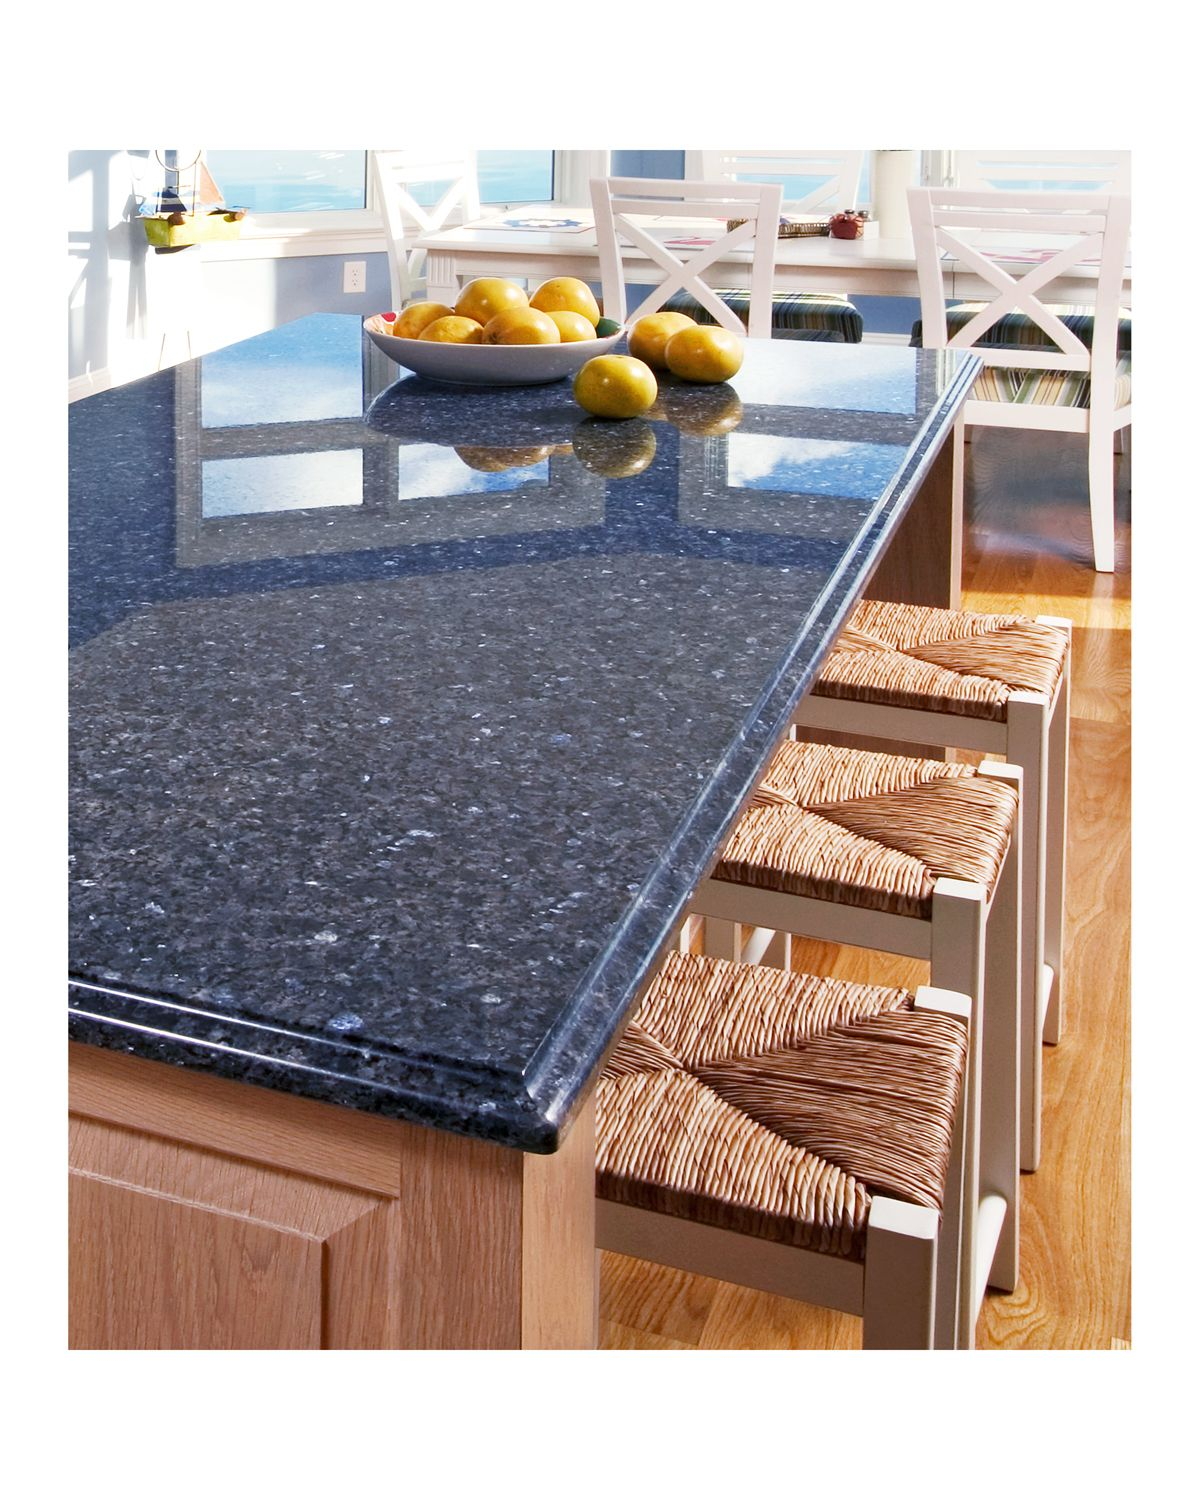 Blue Quartz Kitchen Countertops: Blue Countertops For Kitchens